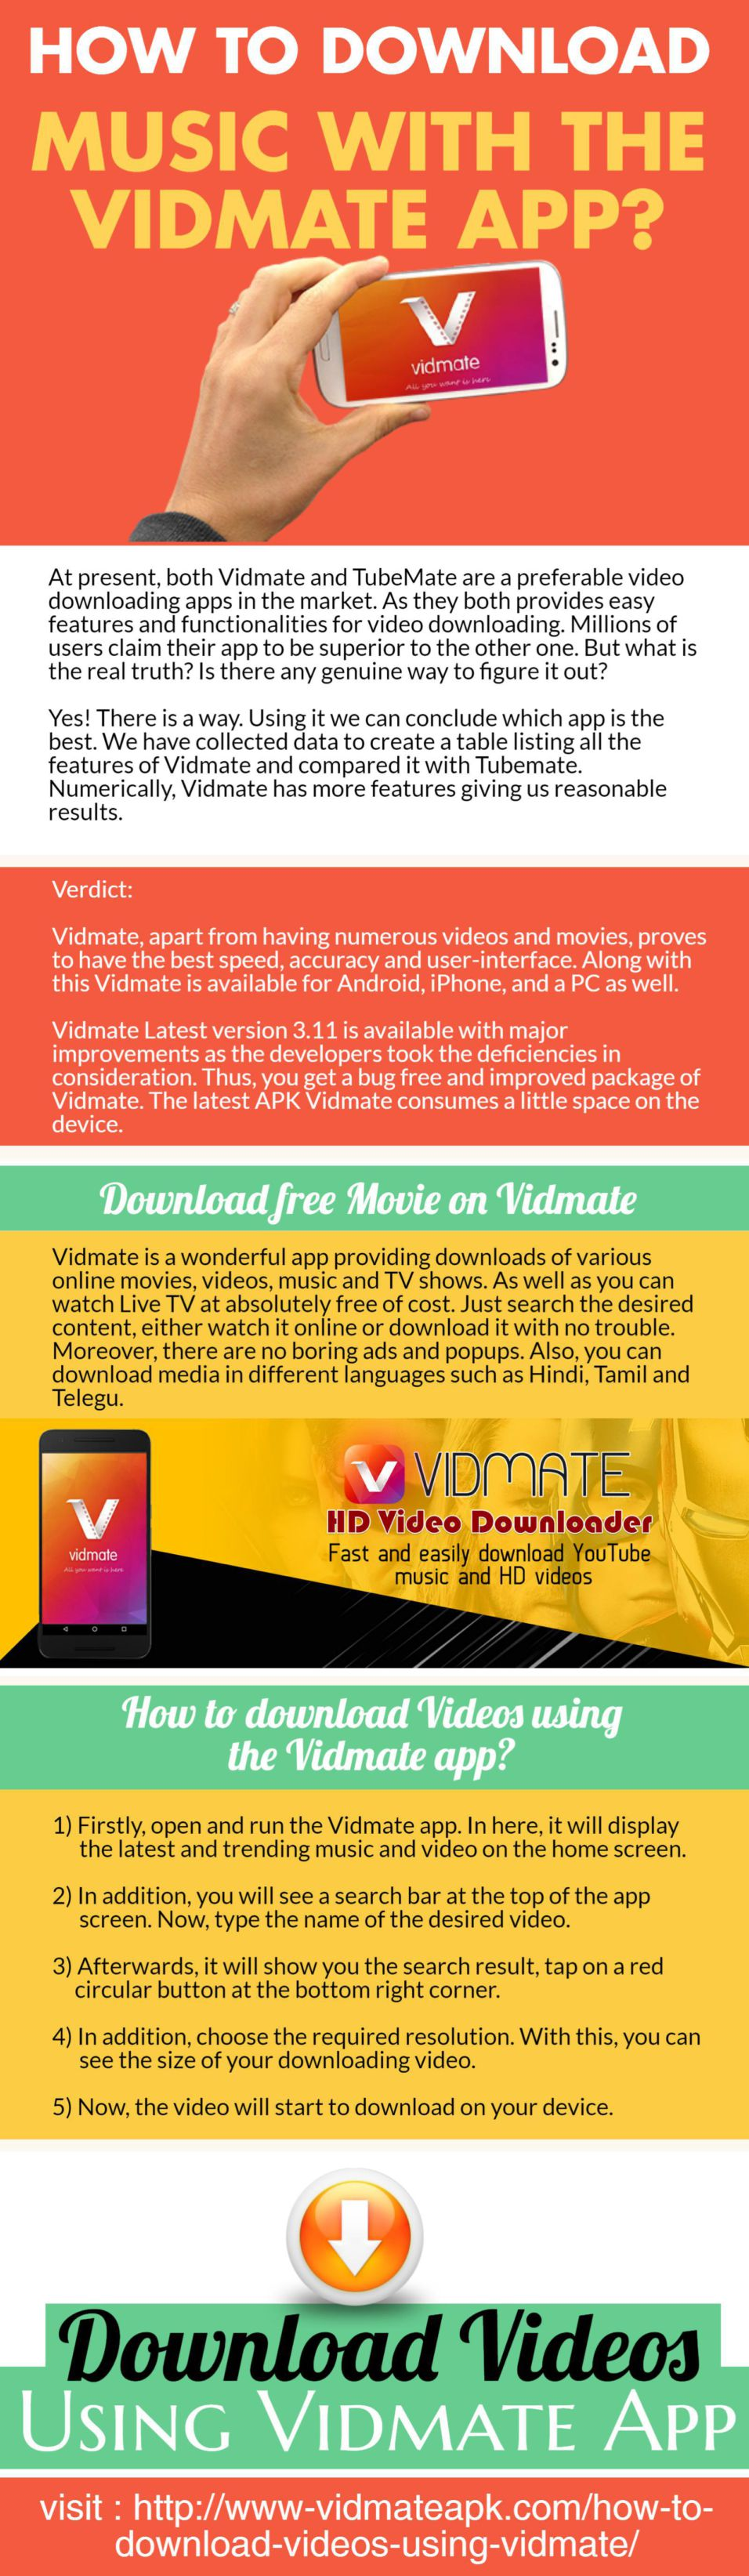 At Present, Both Vidmate And Tubemate Are A Preferable Video Downloading  Apps In The Market